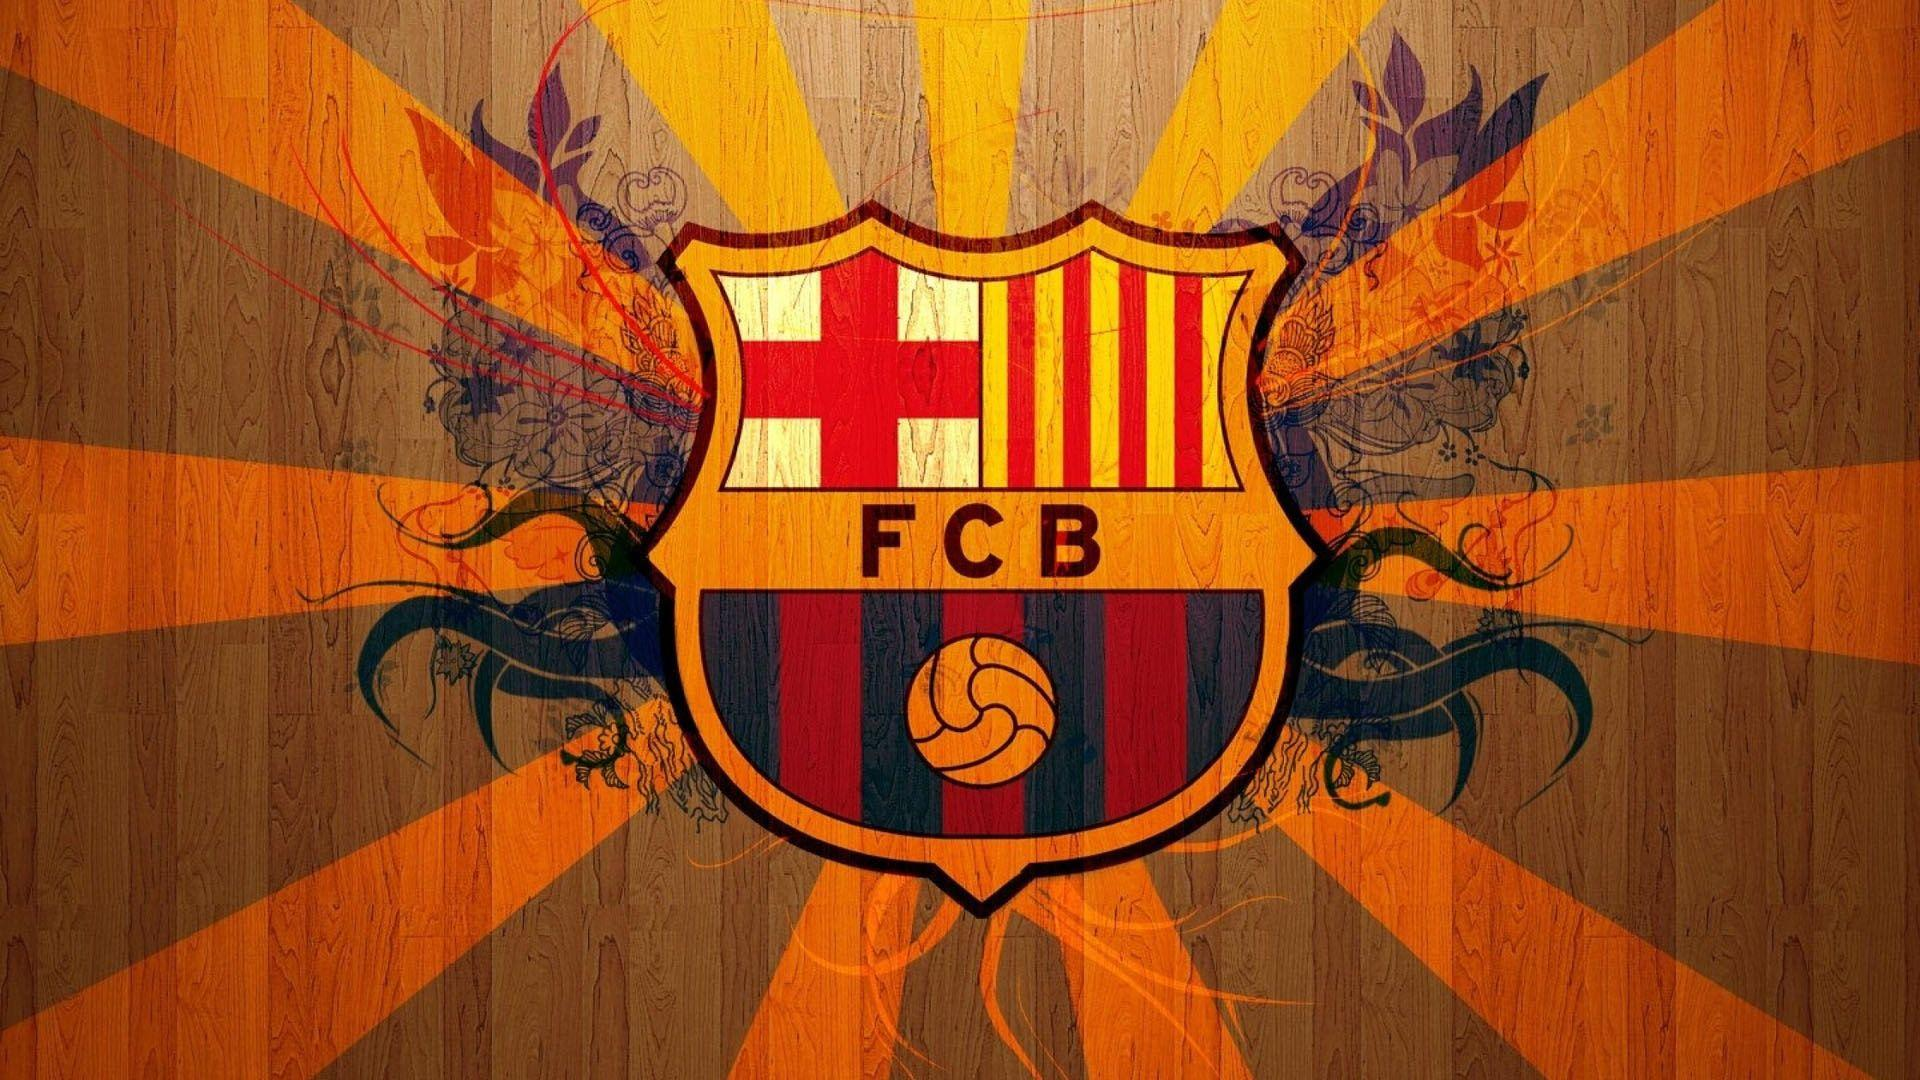 FC Barca Wallpaper Wide or HD | Sports Wallpapers